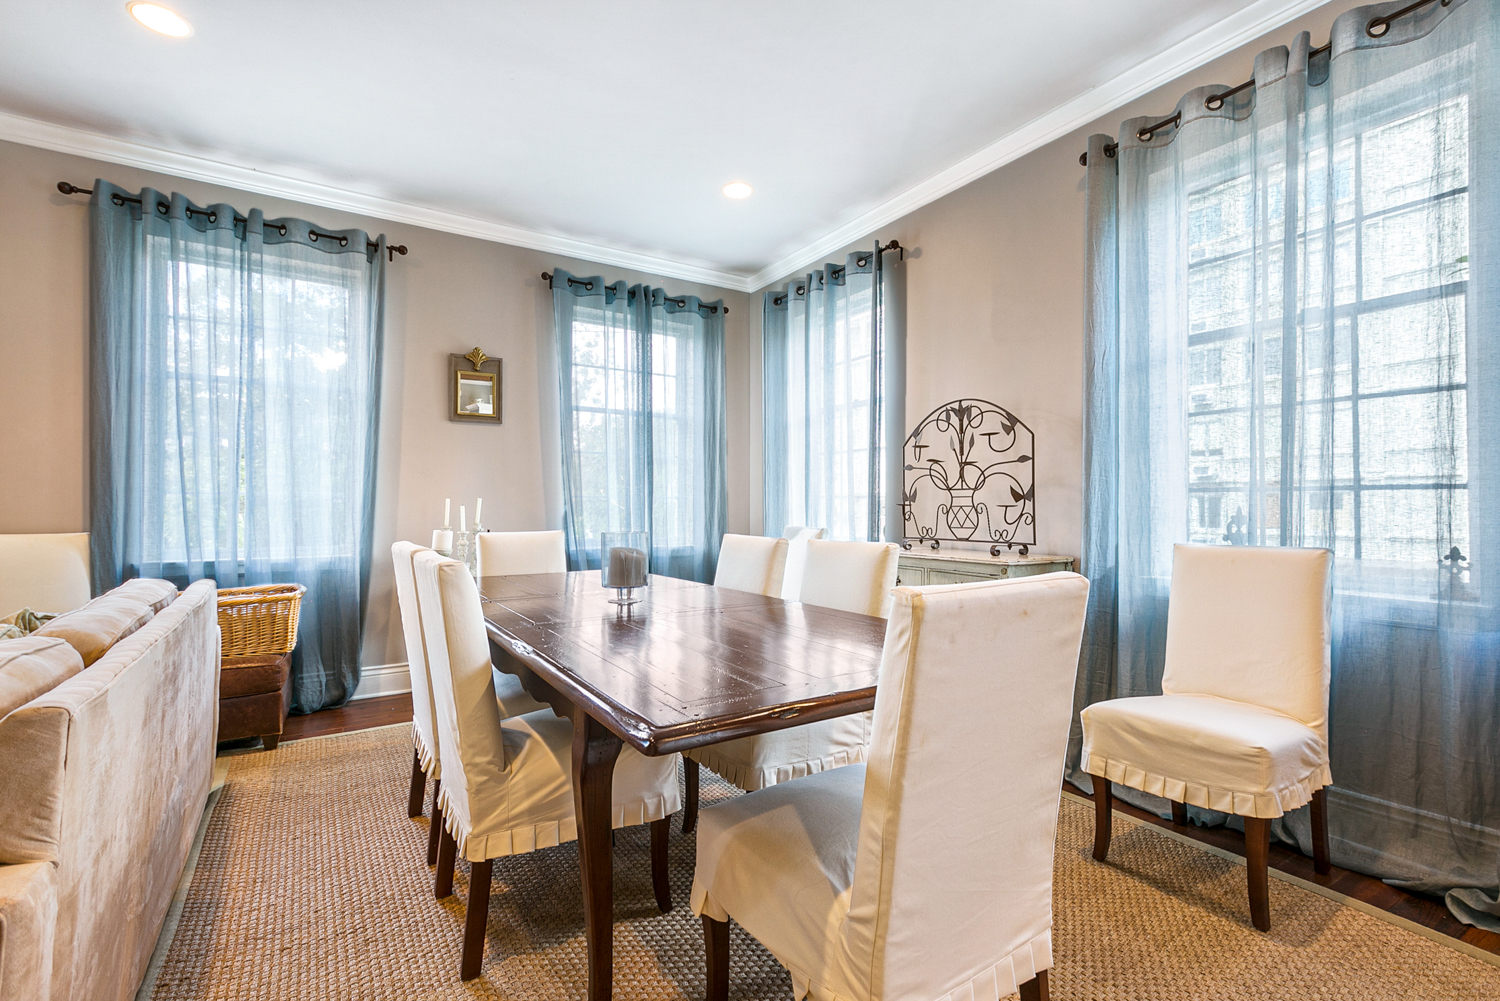 Garden District, Apartment, 2 beds, 1.0 baths, $3000 per month New Orleans Rental - devie image_5